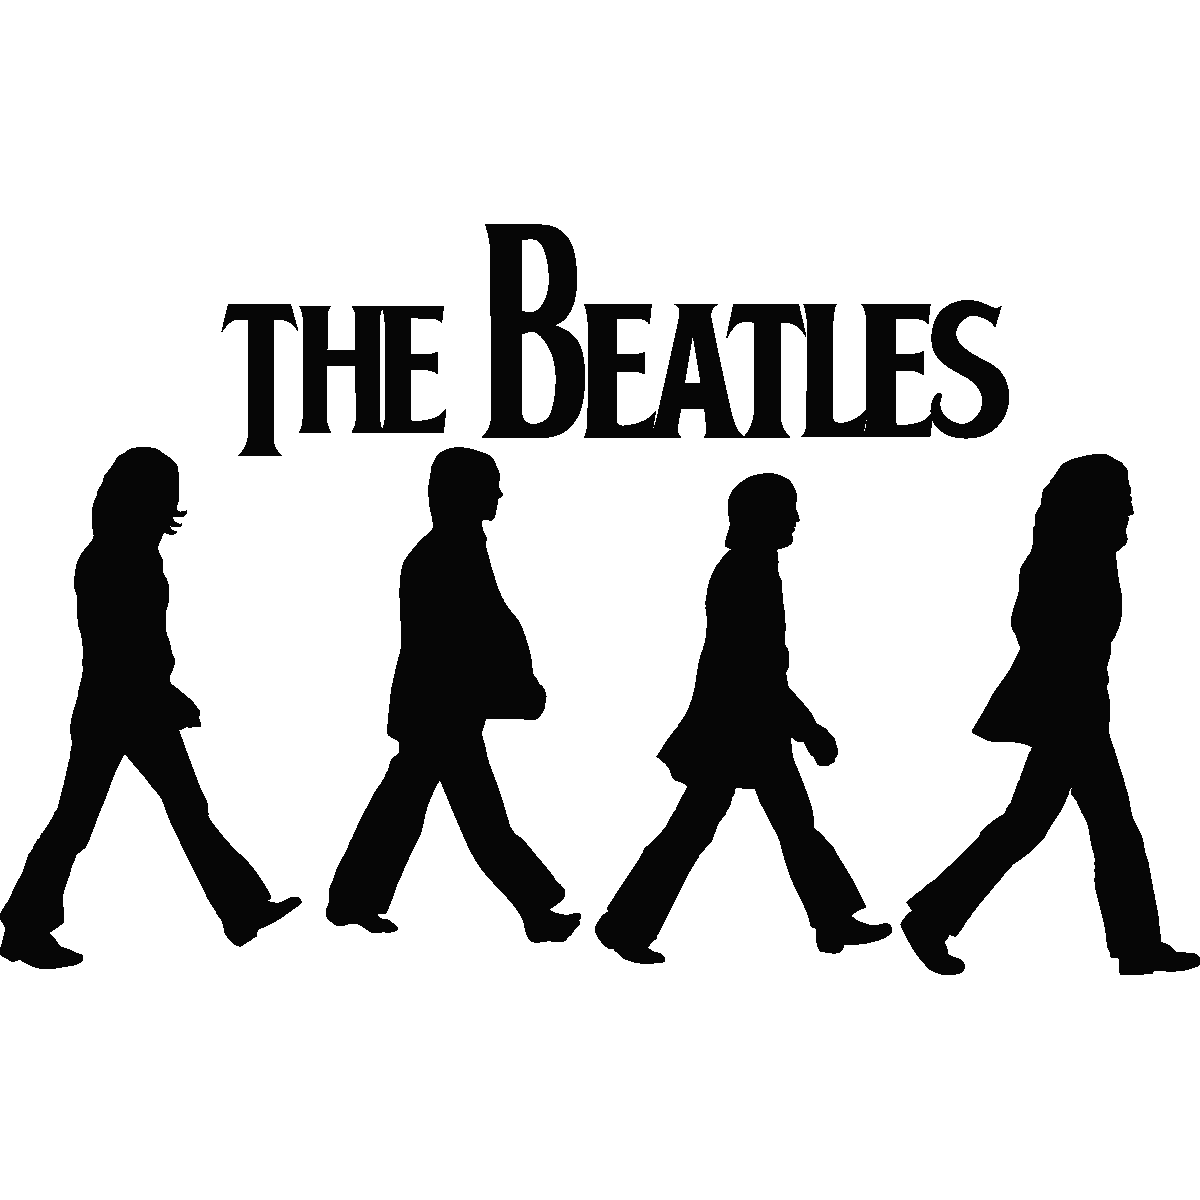 Line Drawing In Html : Stickers muraux musique sticker beatles abbey road